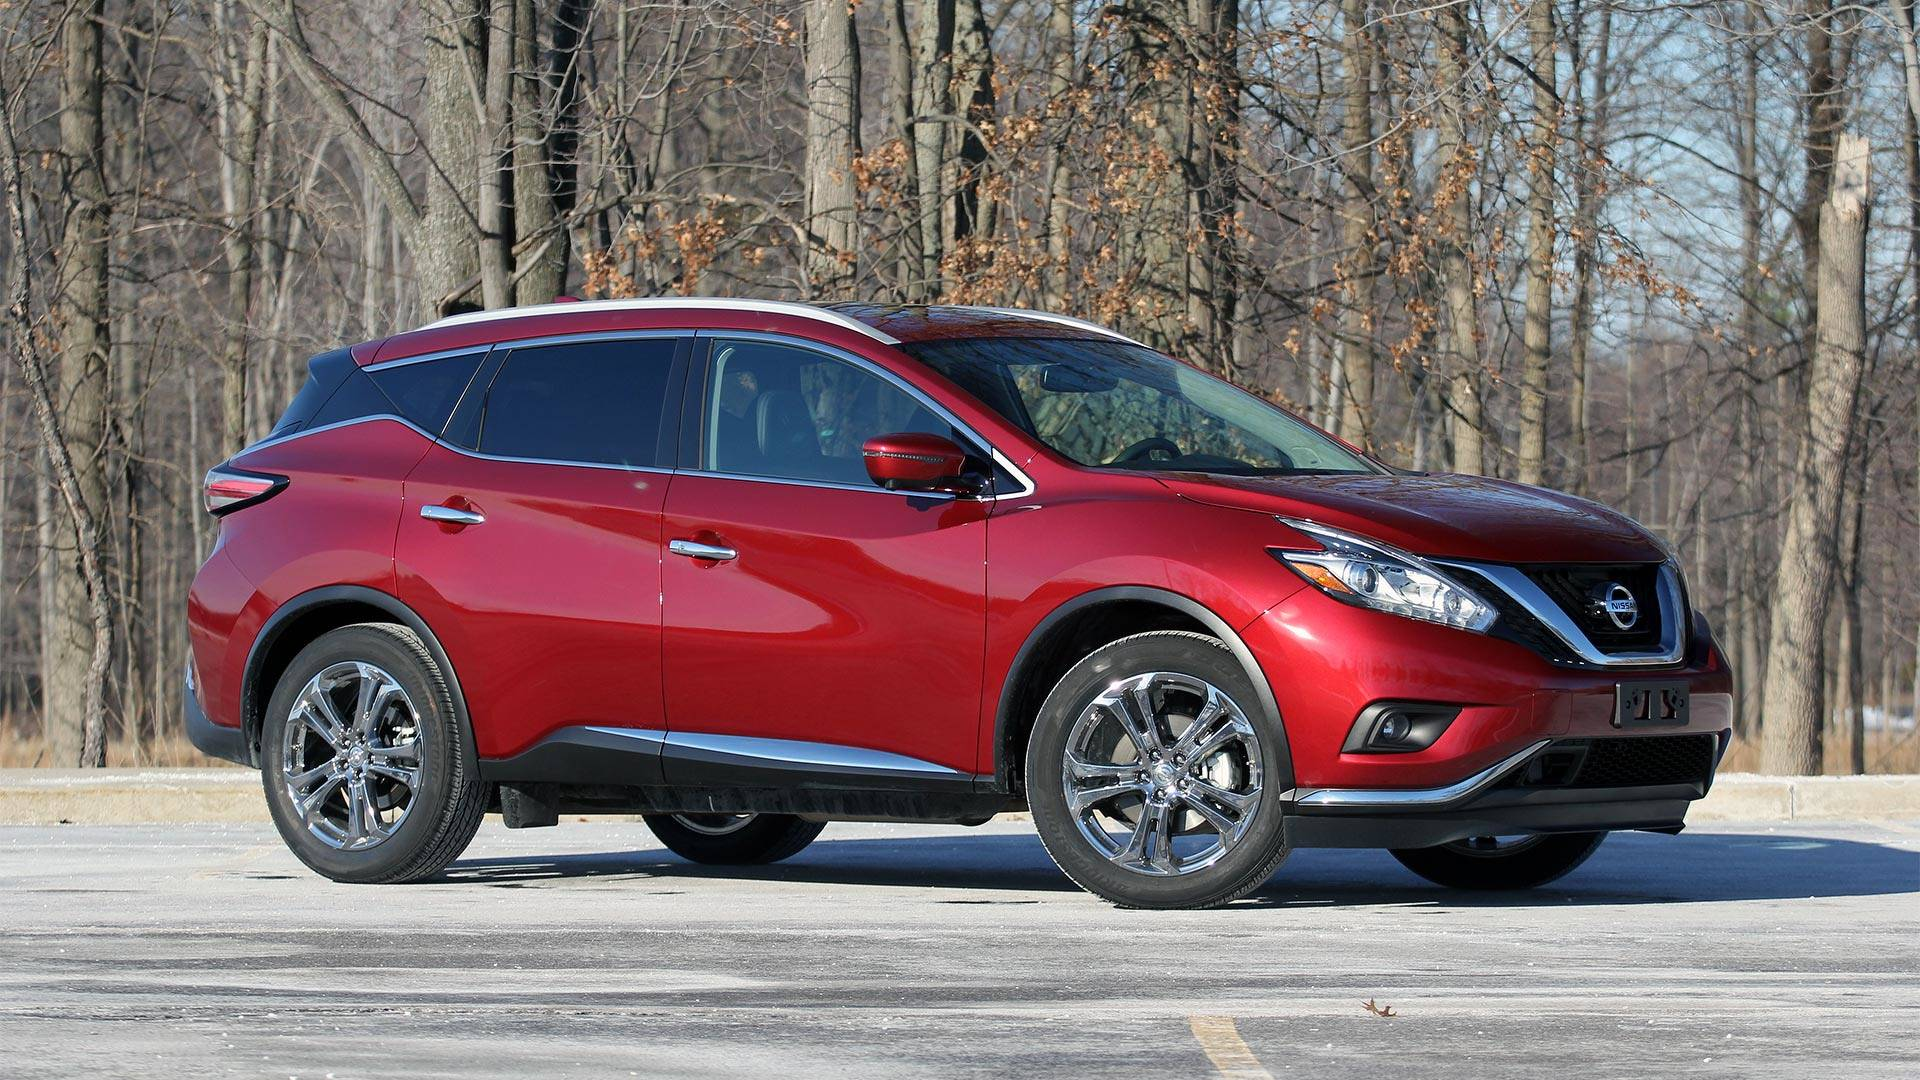 2018 Nissan Murano Review Style With Substance